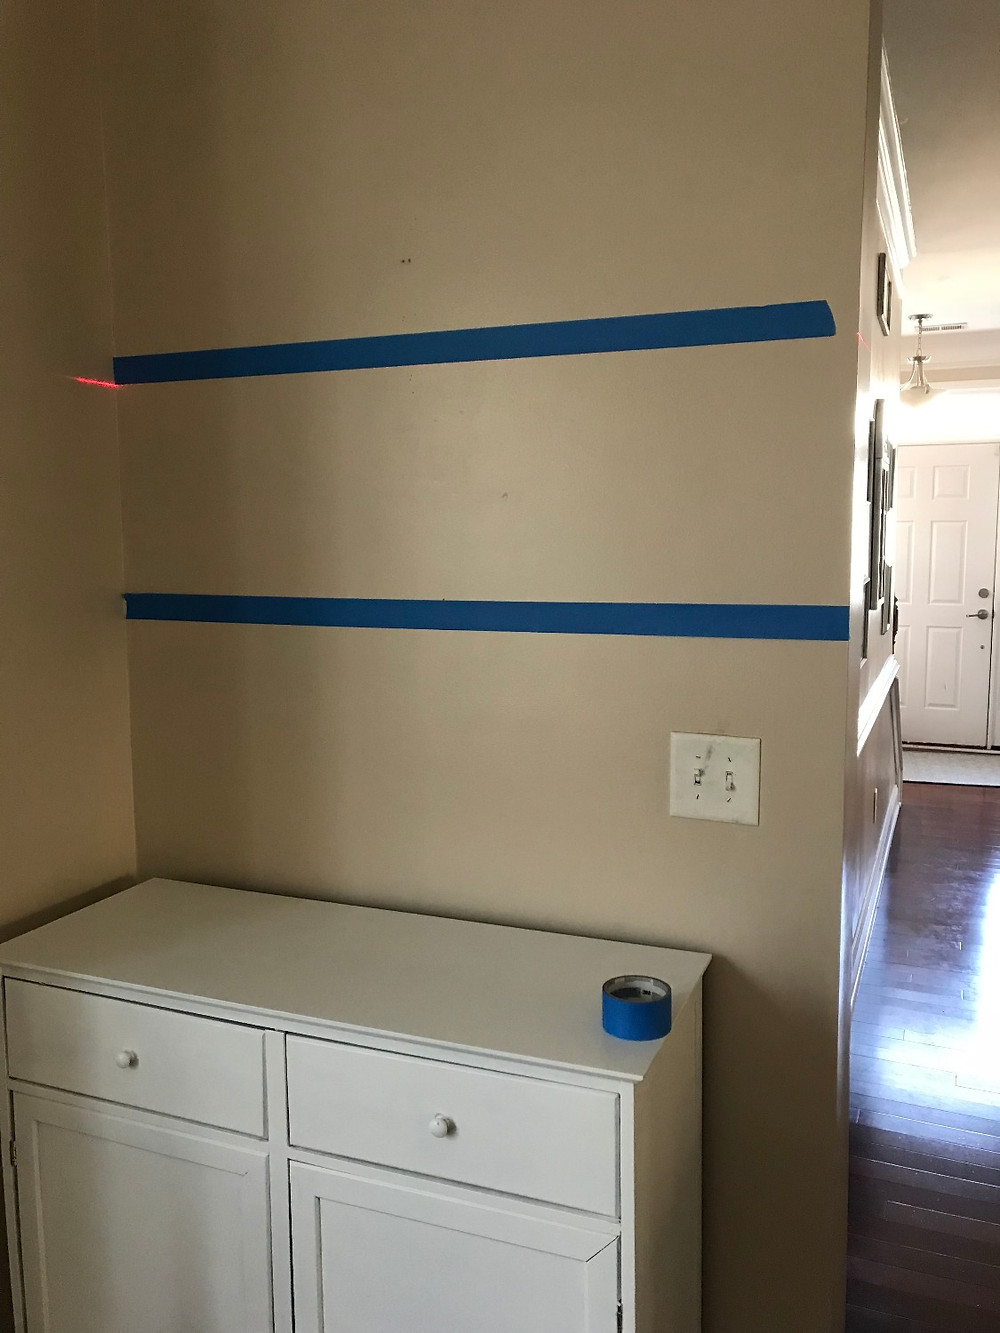 laser level with painter's tape